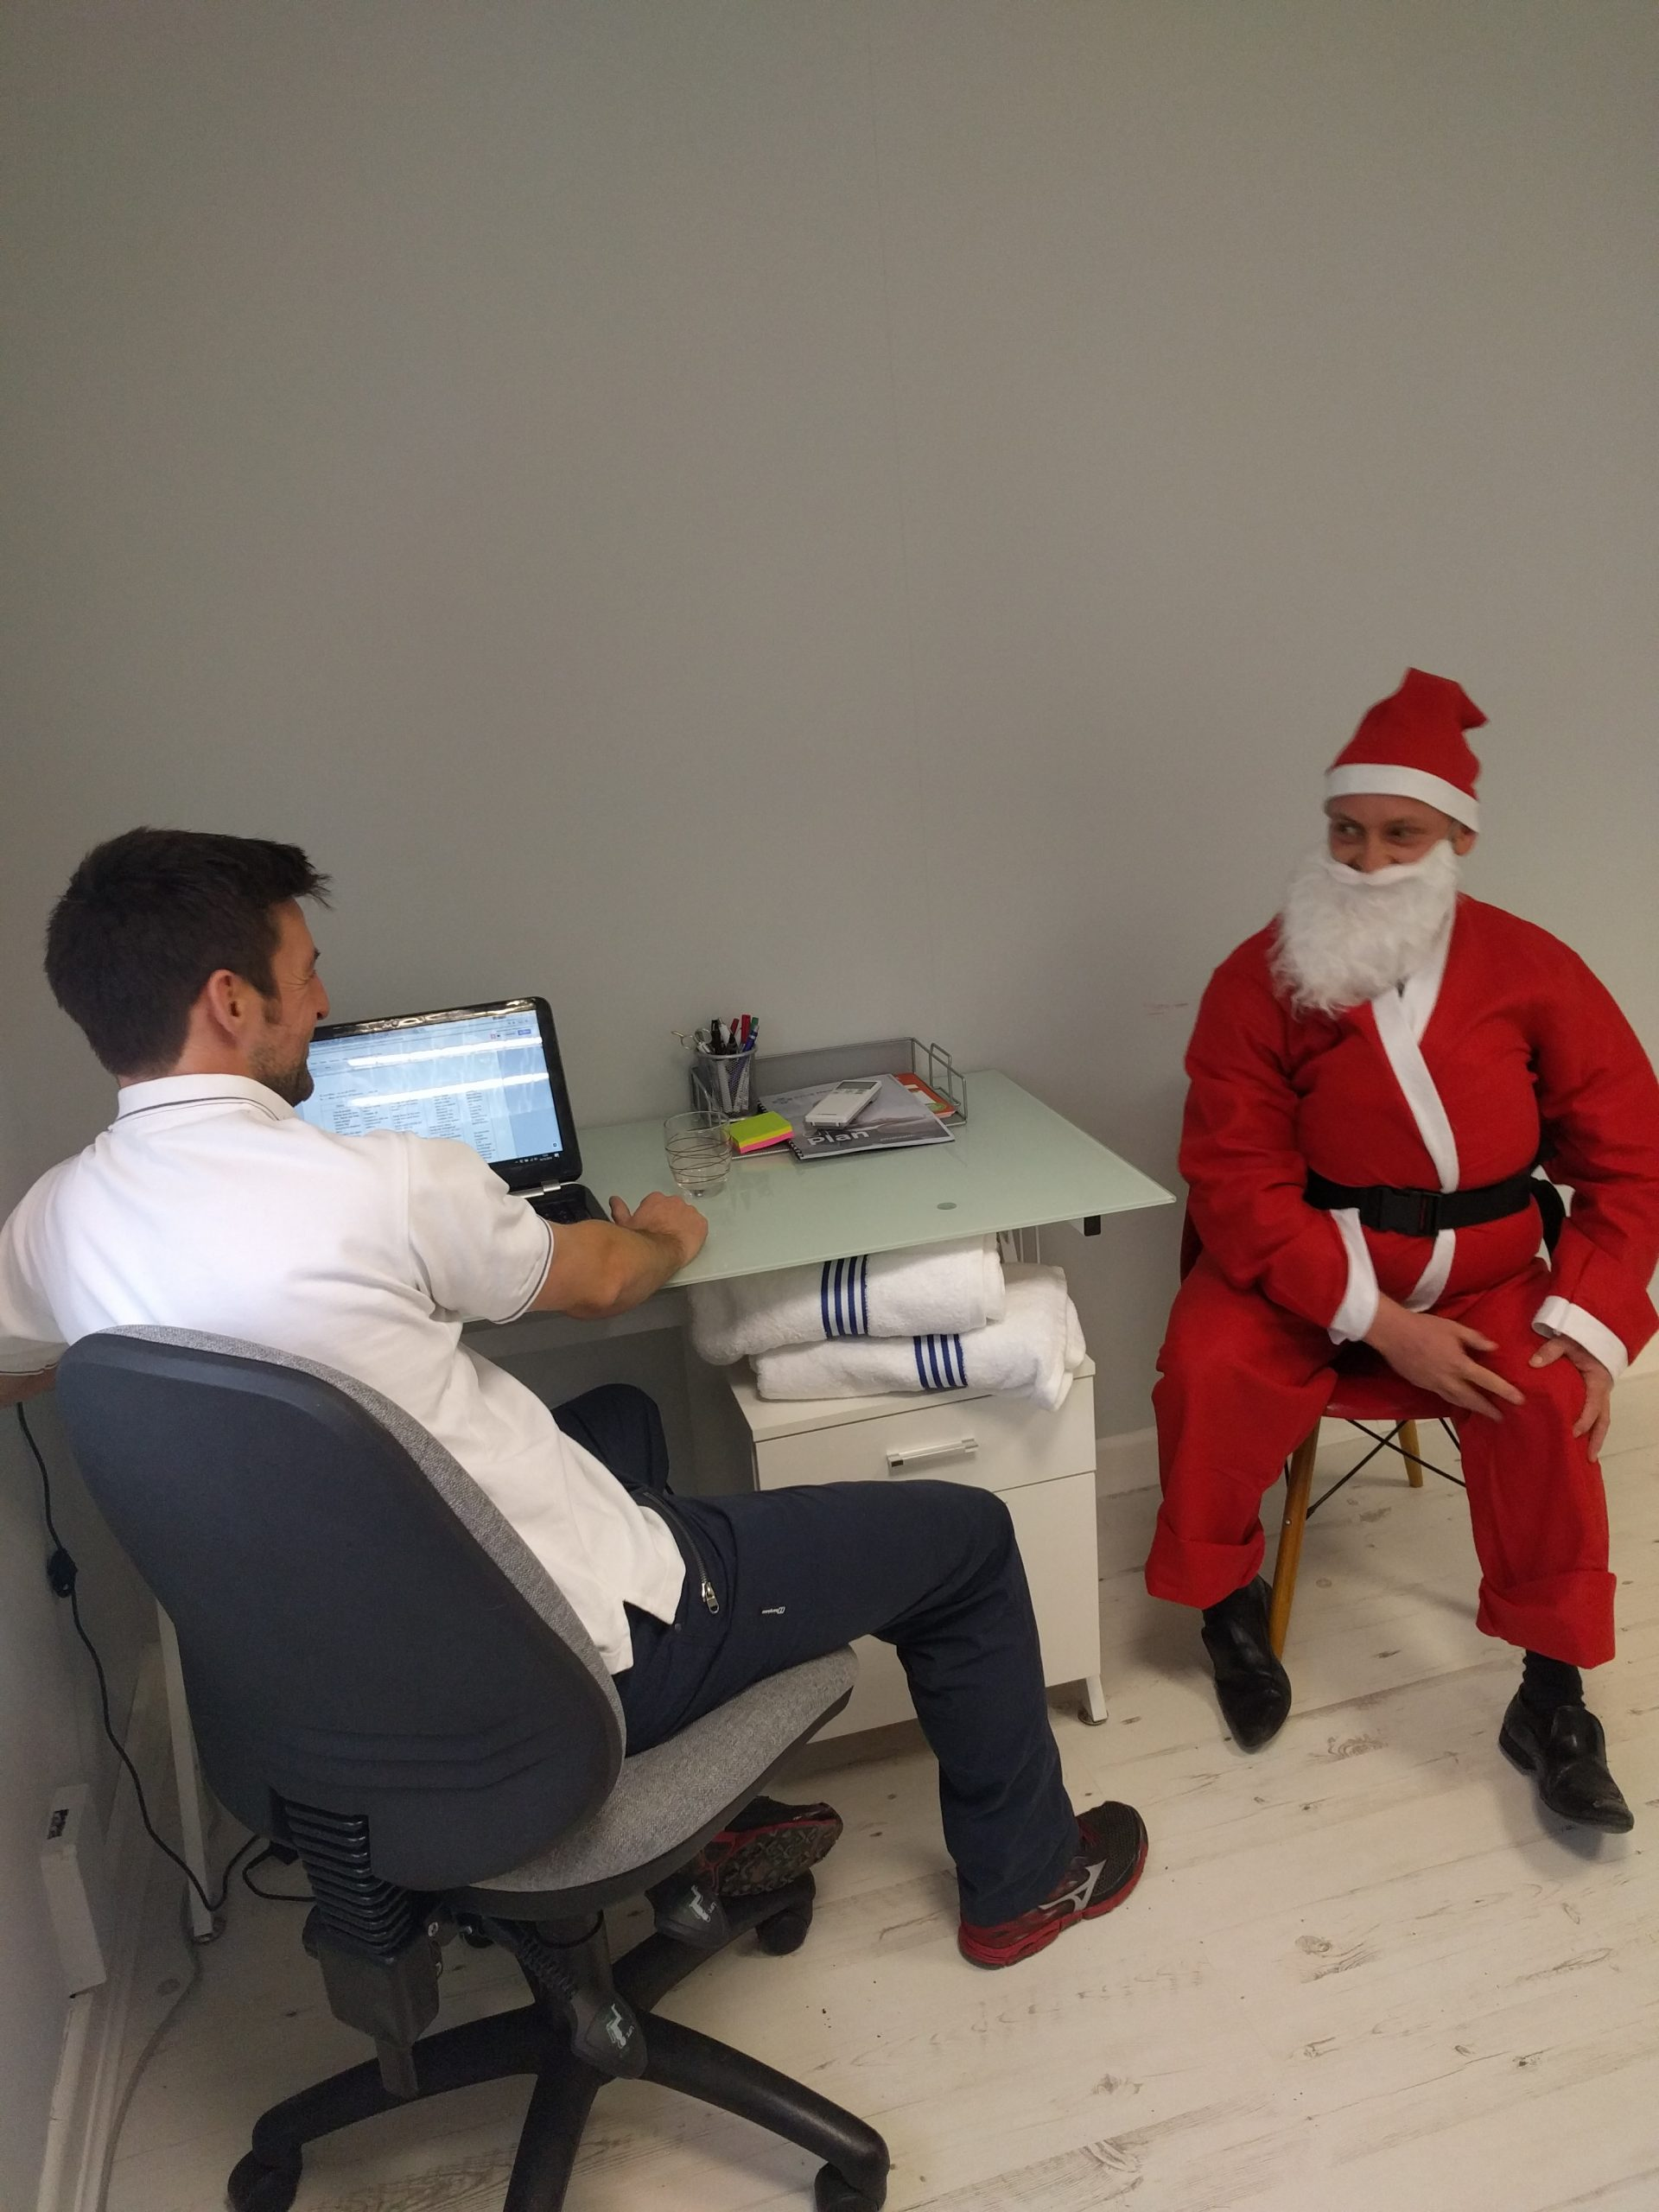 When Santa needed some physio advice